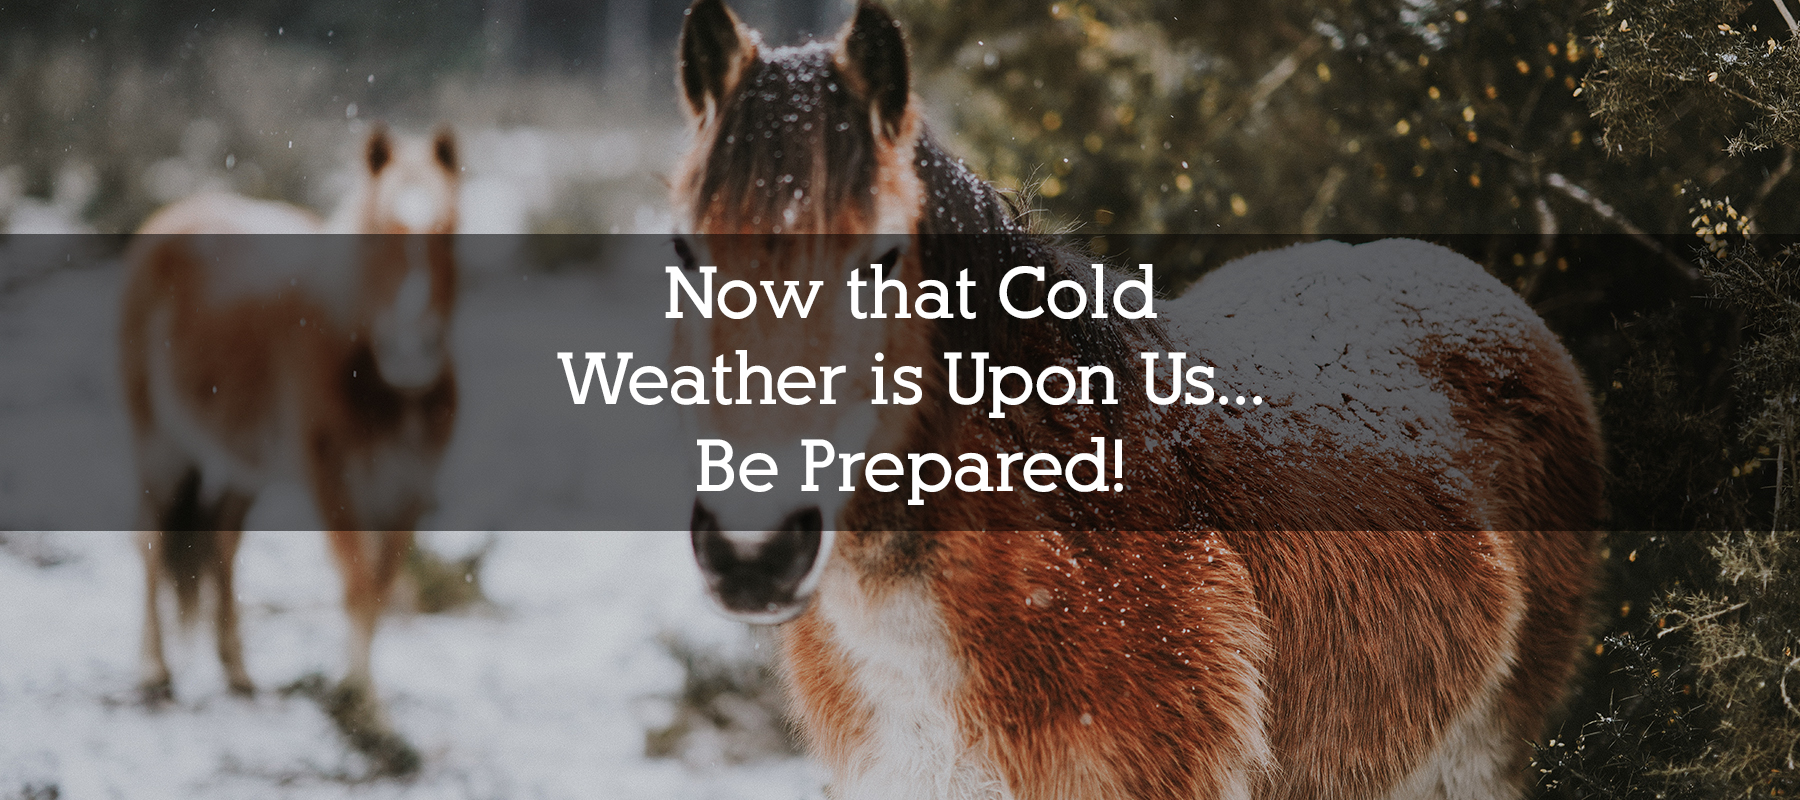 Cold Weather and Winter Tips for your Horse in Colorado